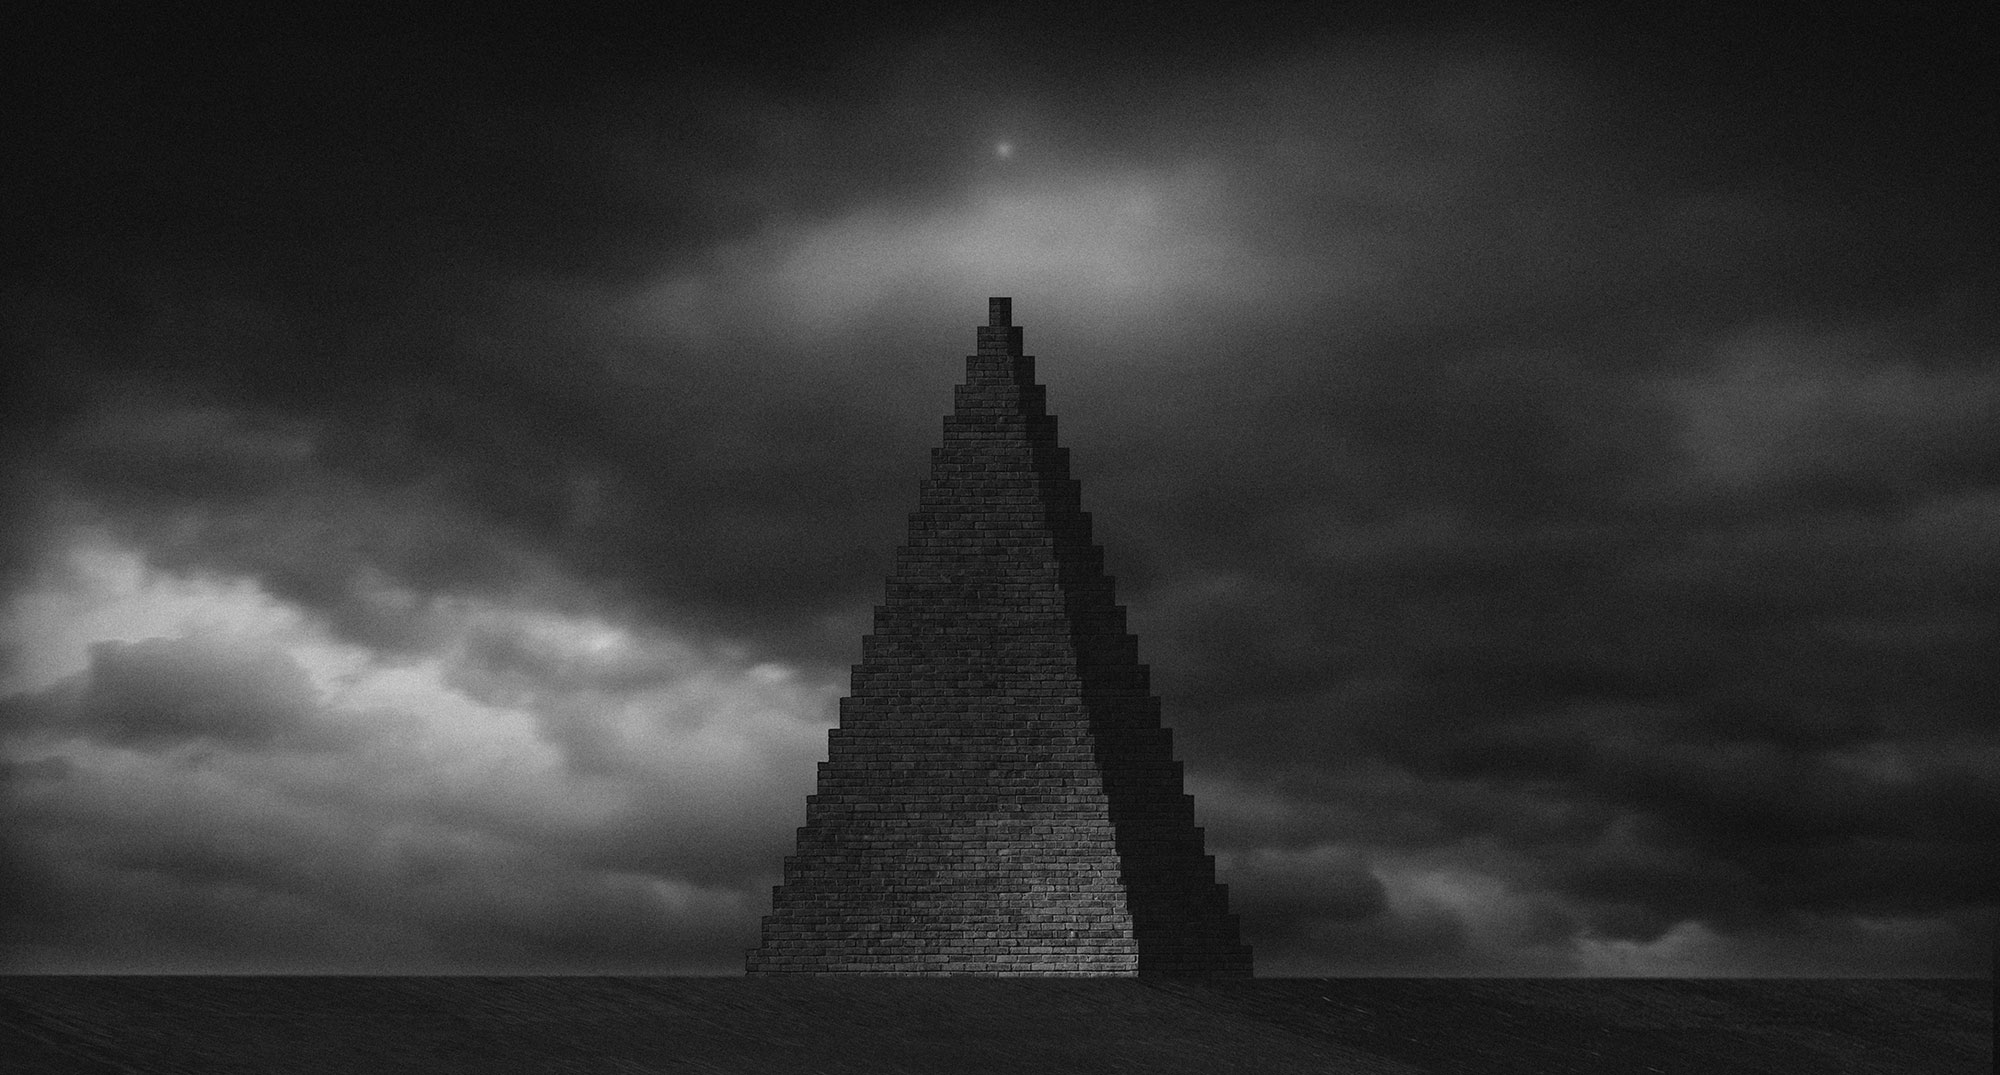 The KLF to build a pyramid from the ashes of dead people